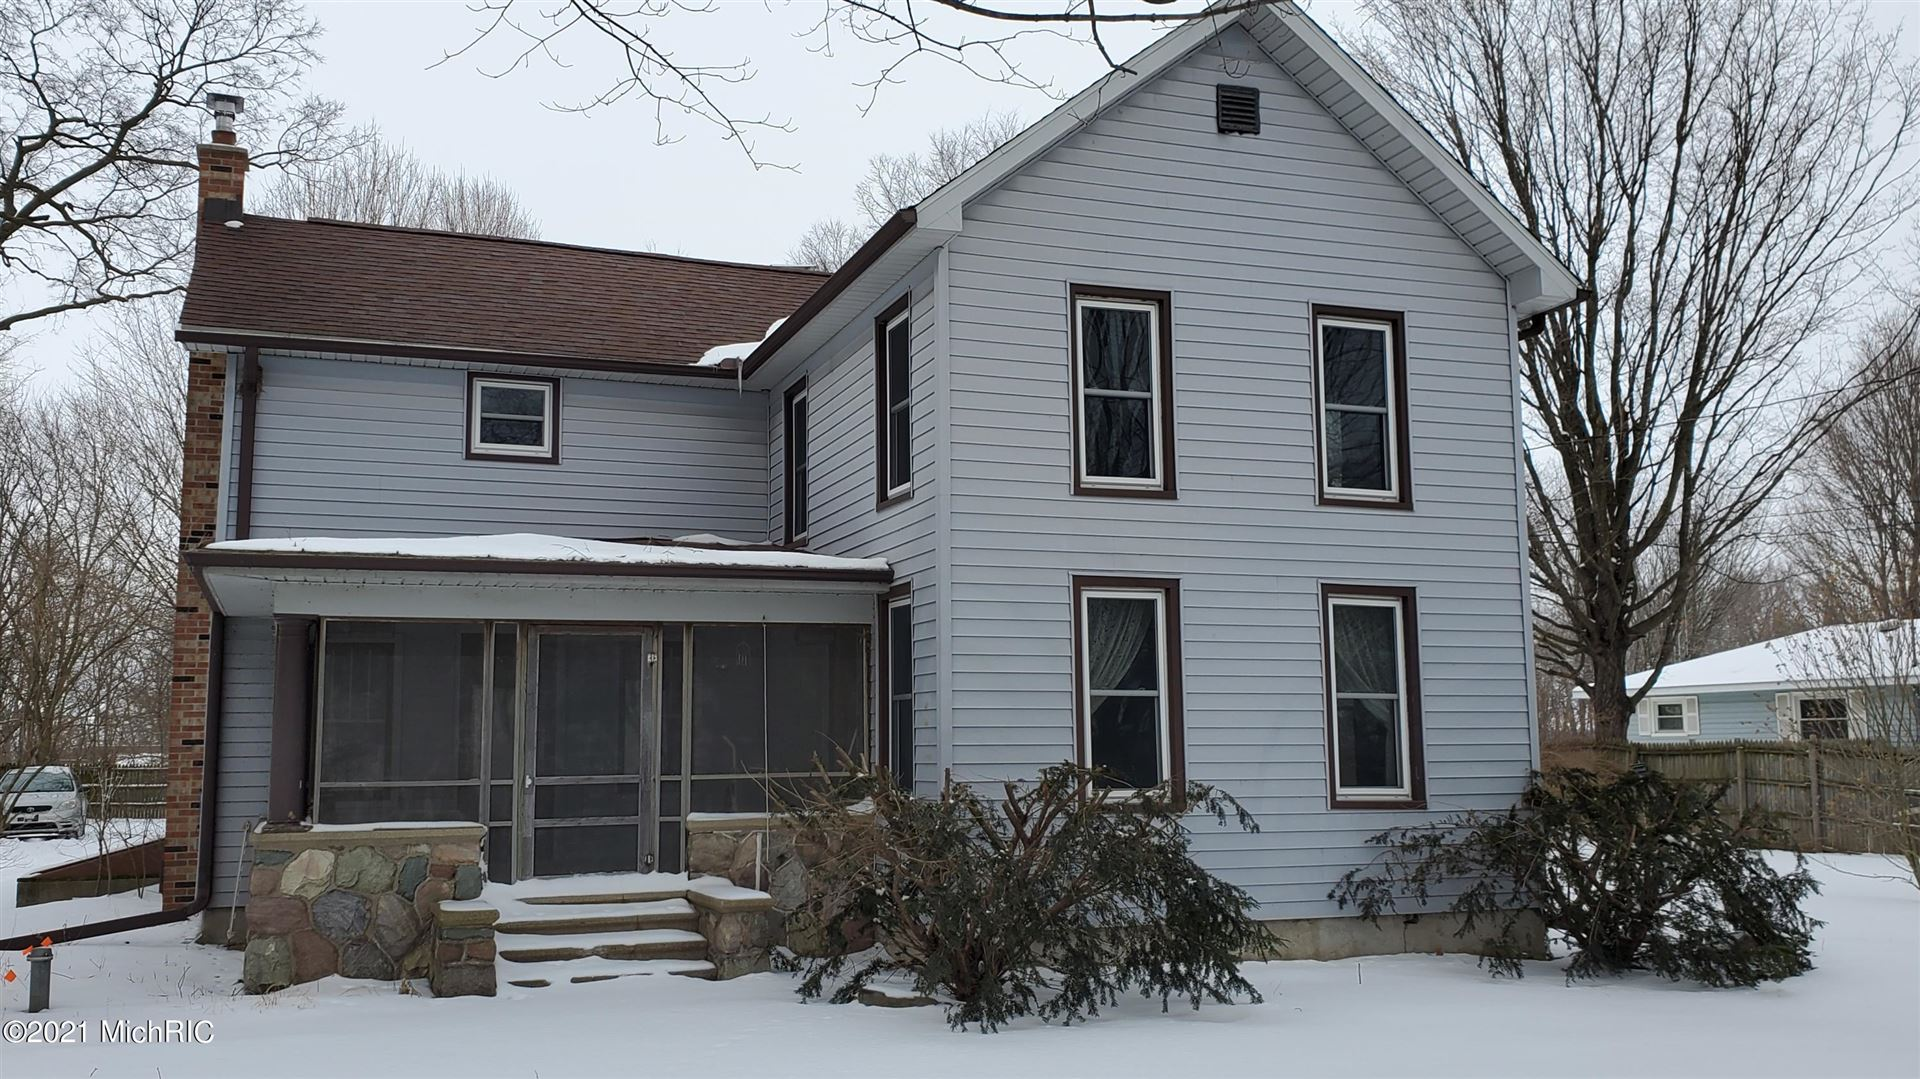 144 W Chicago Road, Coldwater, MI 49036 - MLS#: 21004314